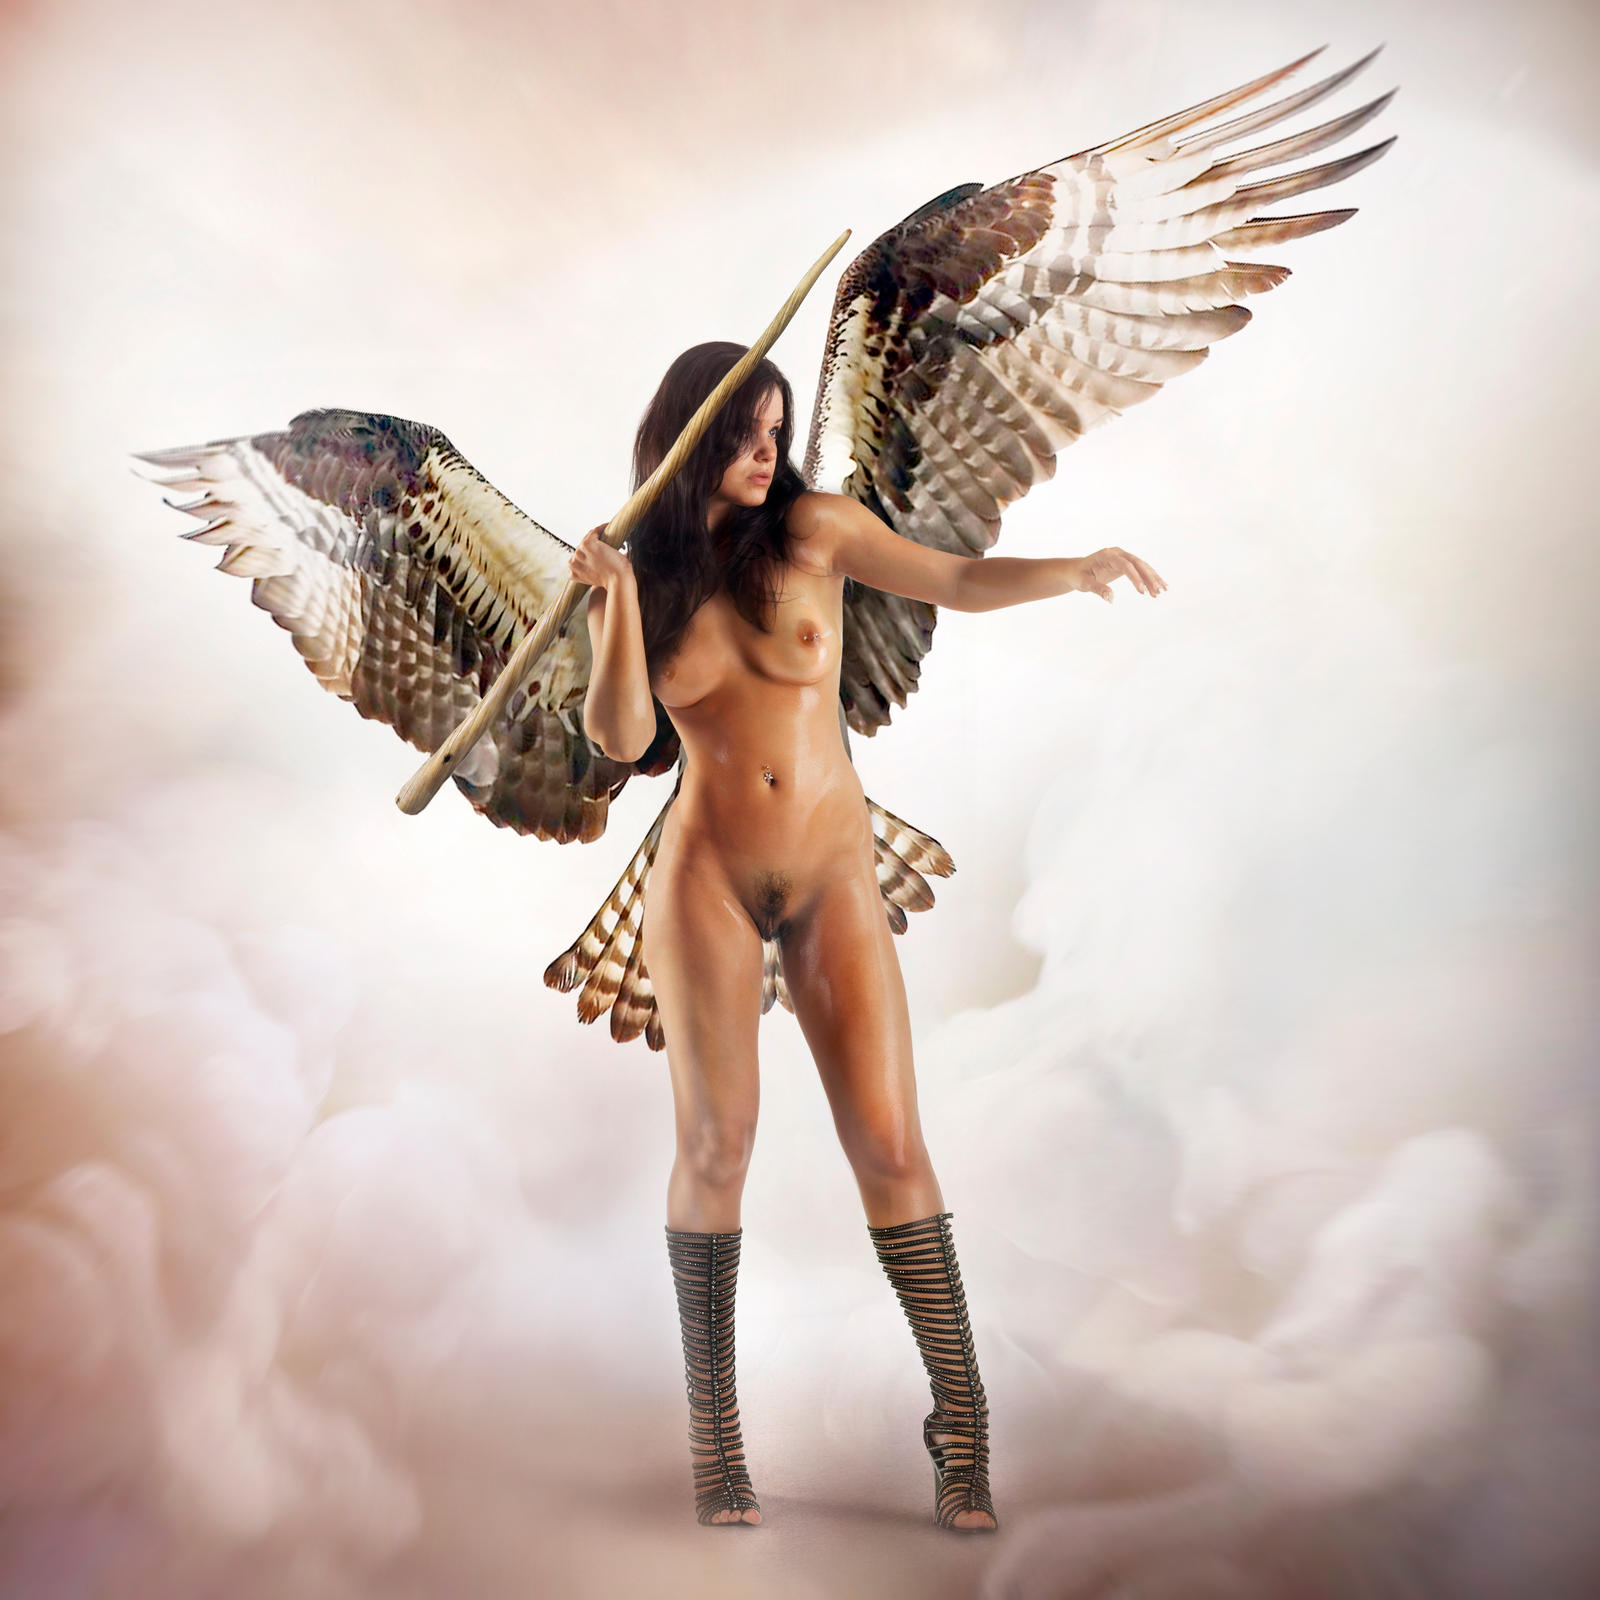 Attack in boots Angel version by FueledbypartII